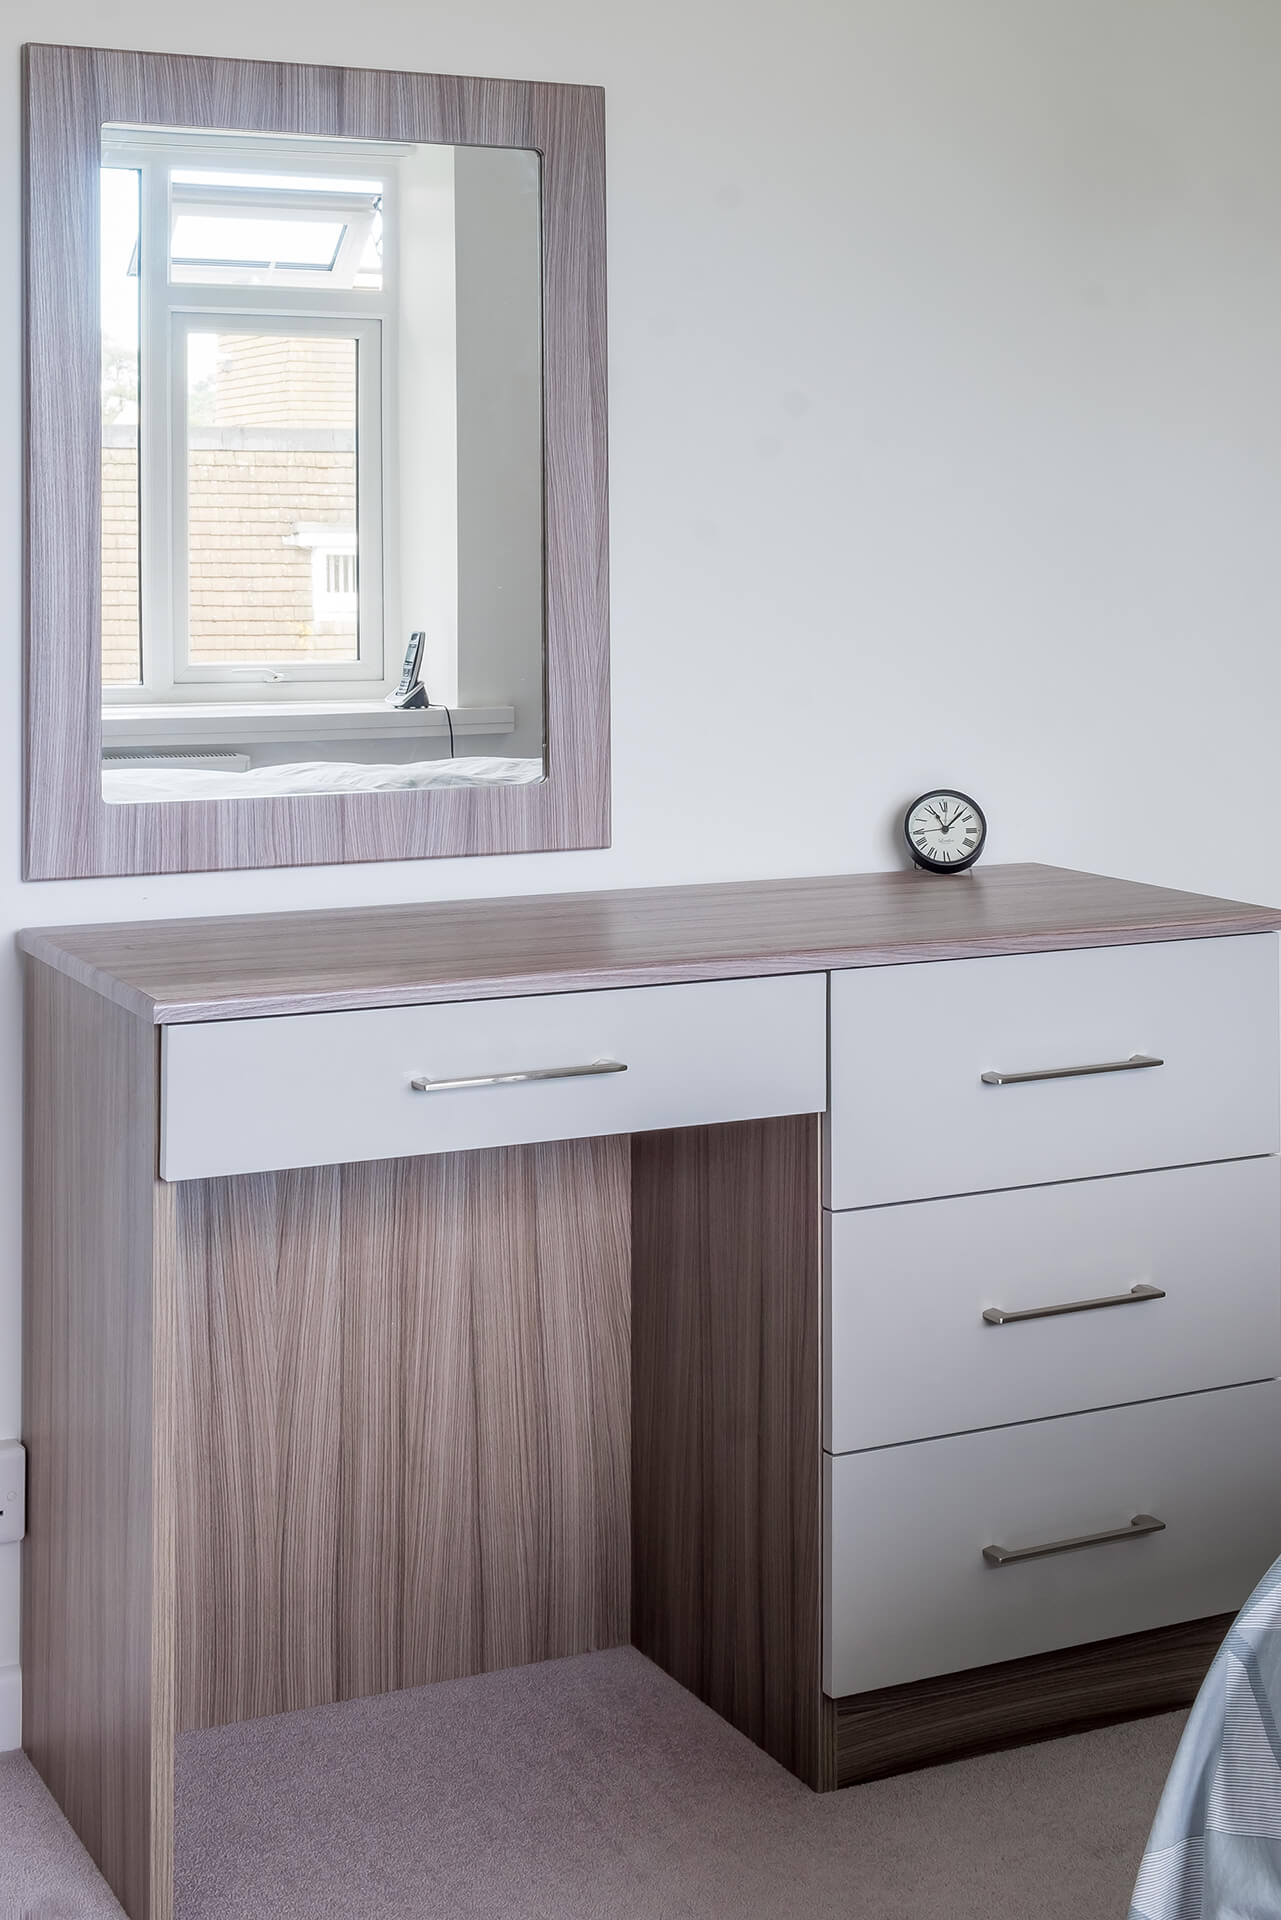 Custom made mirror and dressing table